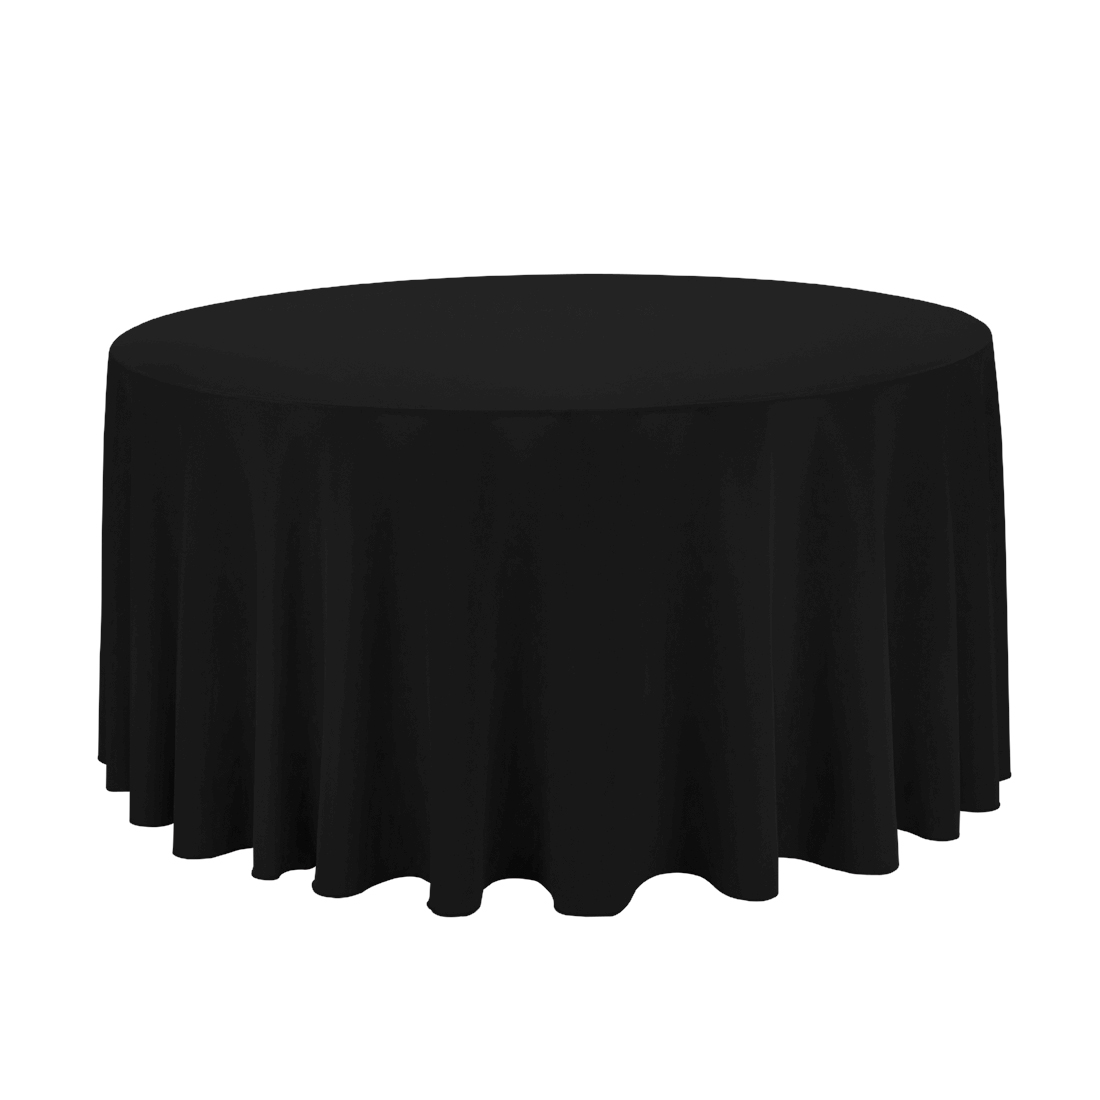 black round table. Round Black Table Cloths E